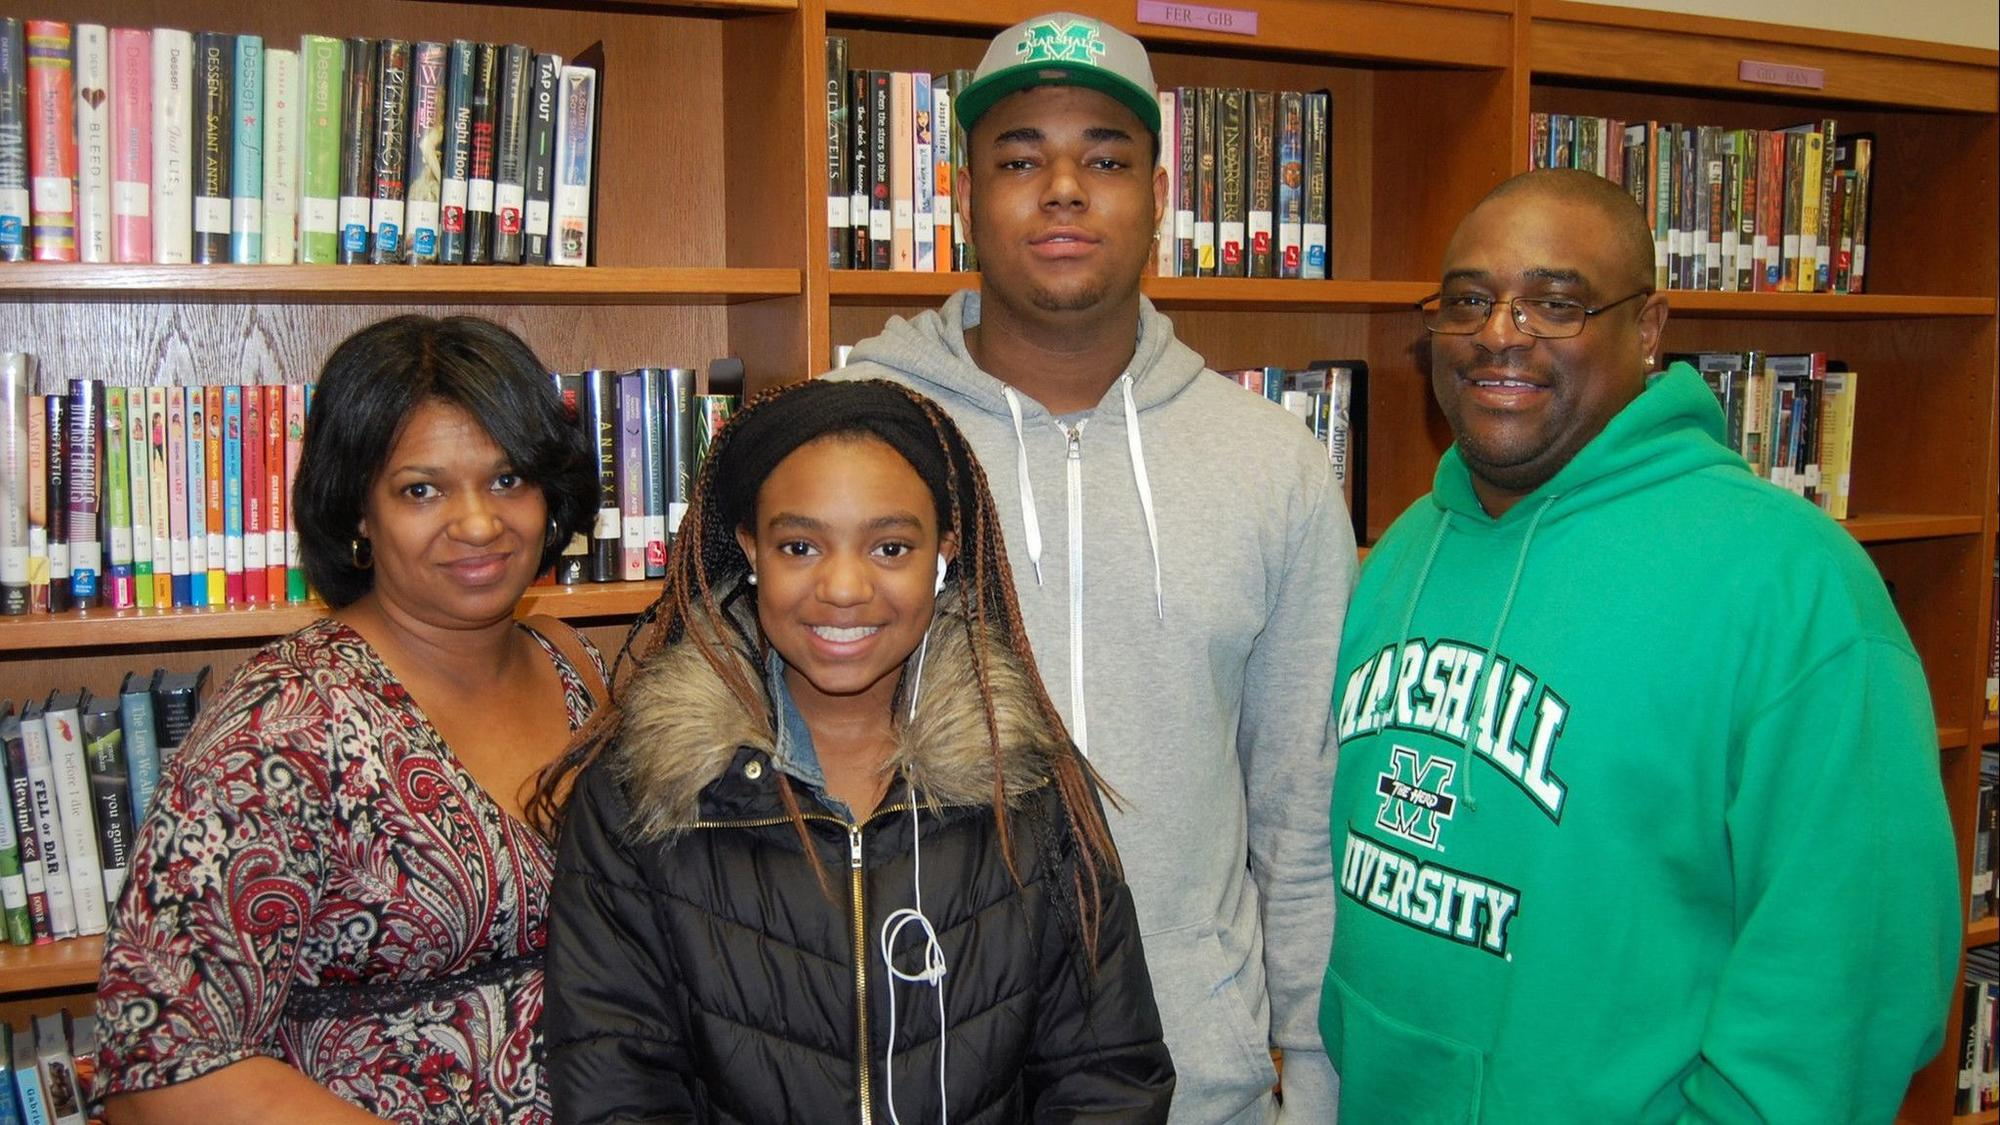 Larry Aaron III and his family on signing day